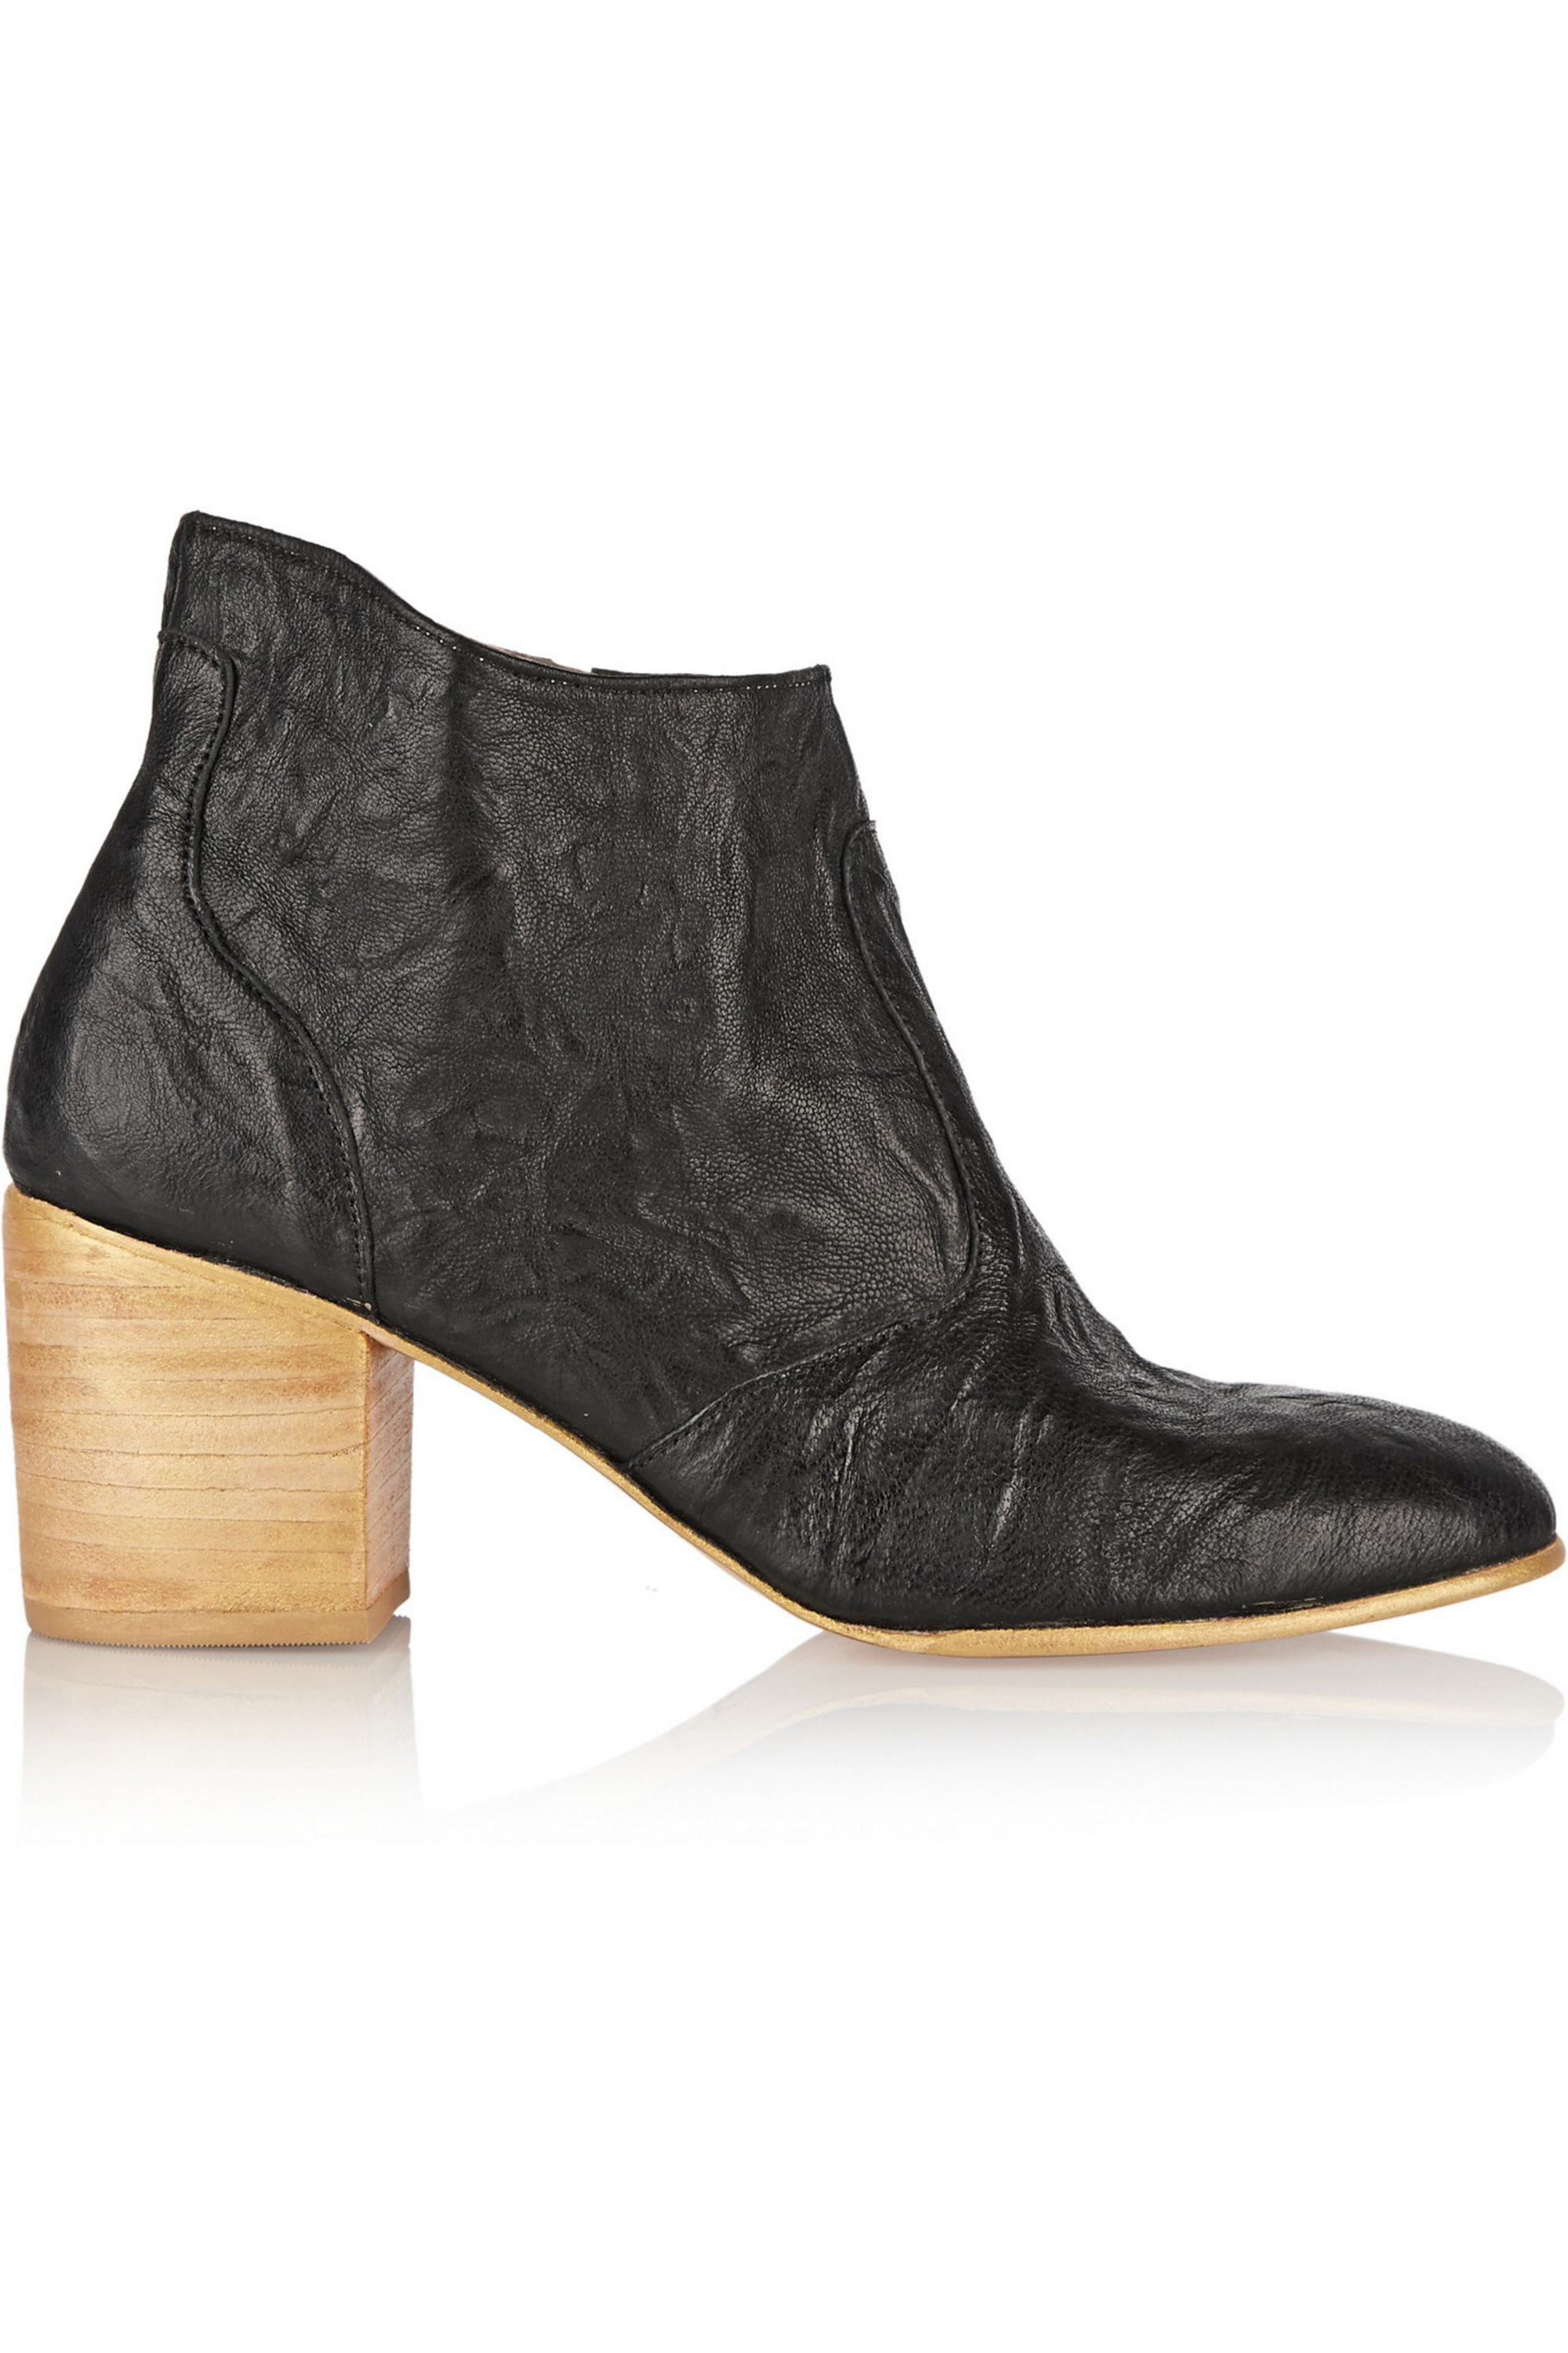 Black Jill wrinkled leather ankle boots